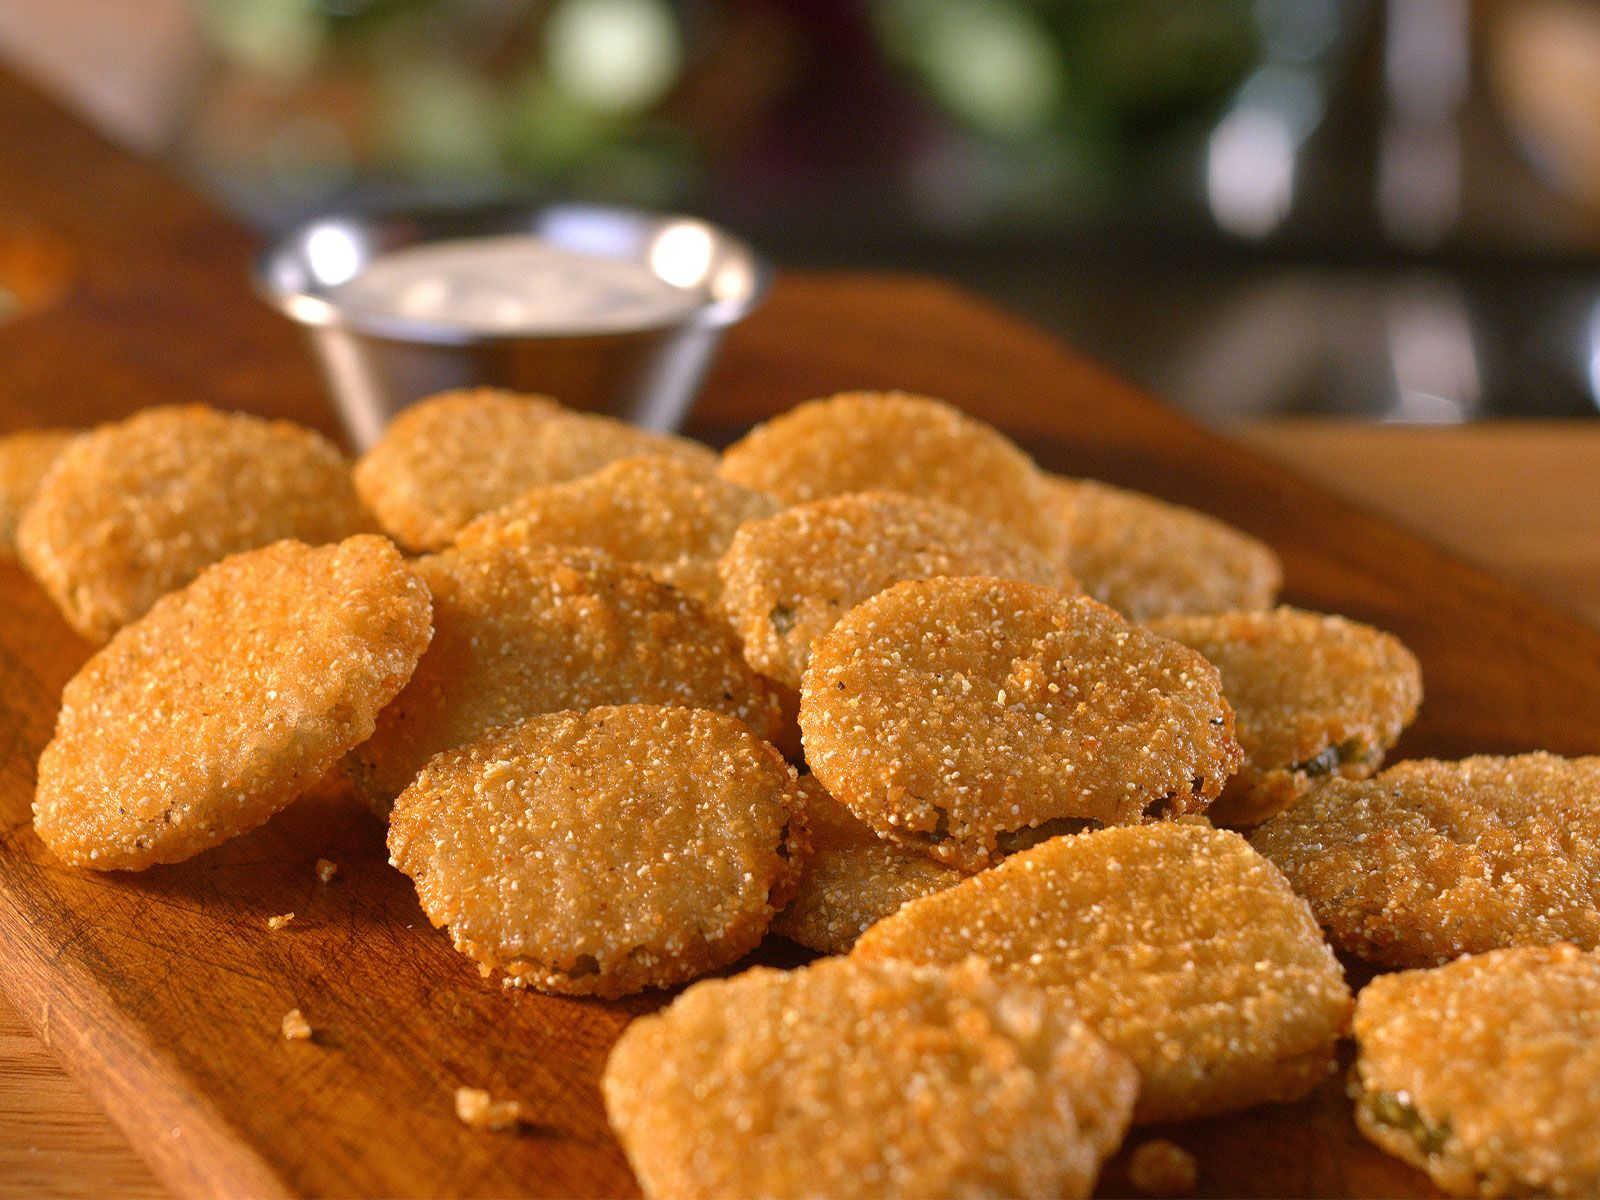 Zaxby's Fried Pickles Are Back - It's the Sharable Nobody Wants to Share